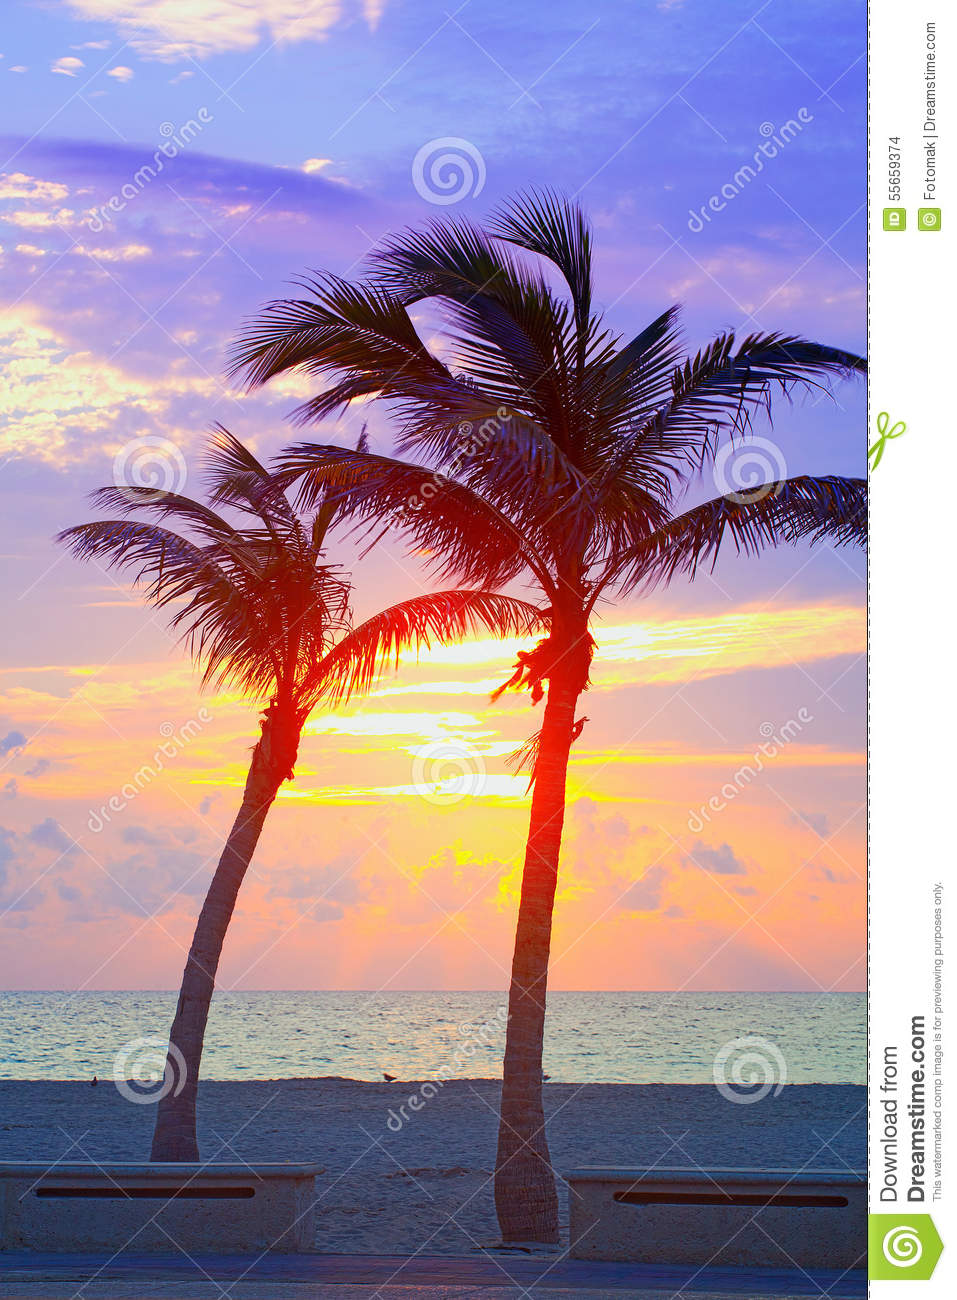 Miami Beach Florida Colorful Summer Sunrise Or Sunset With Palm Trees